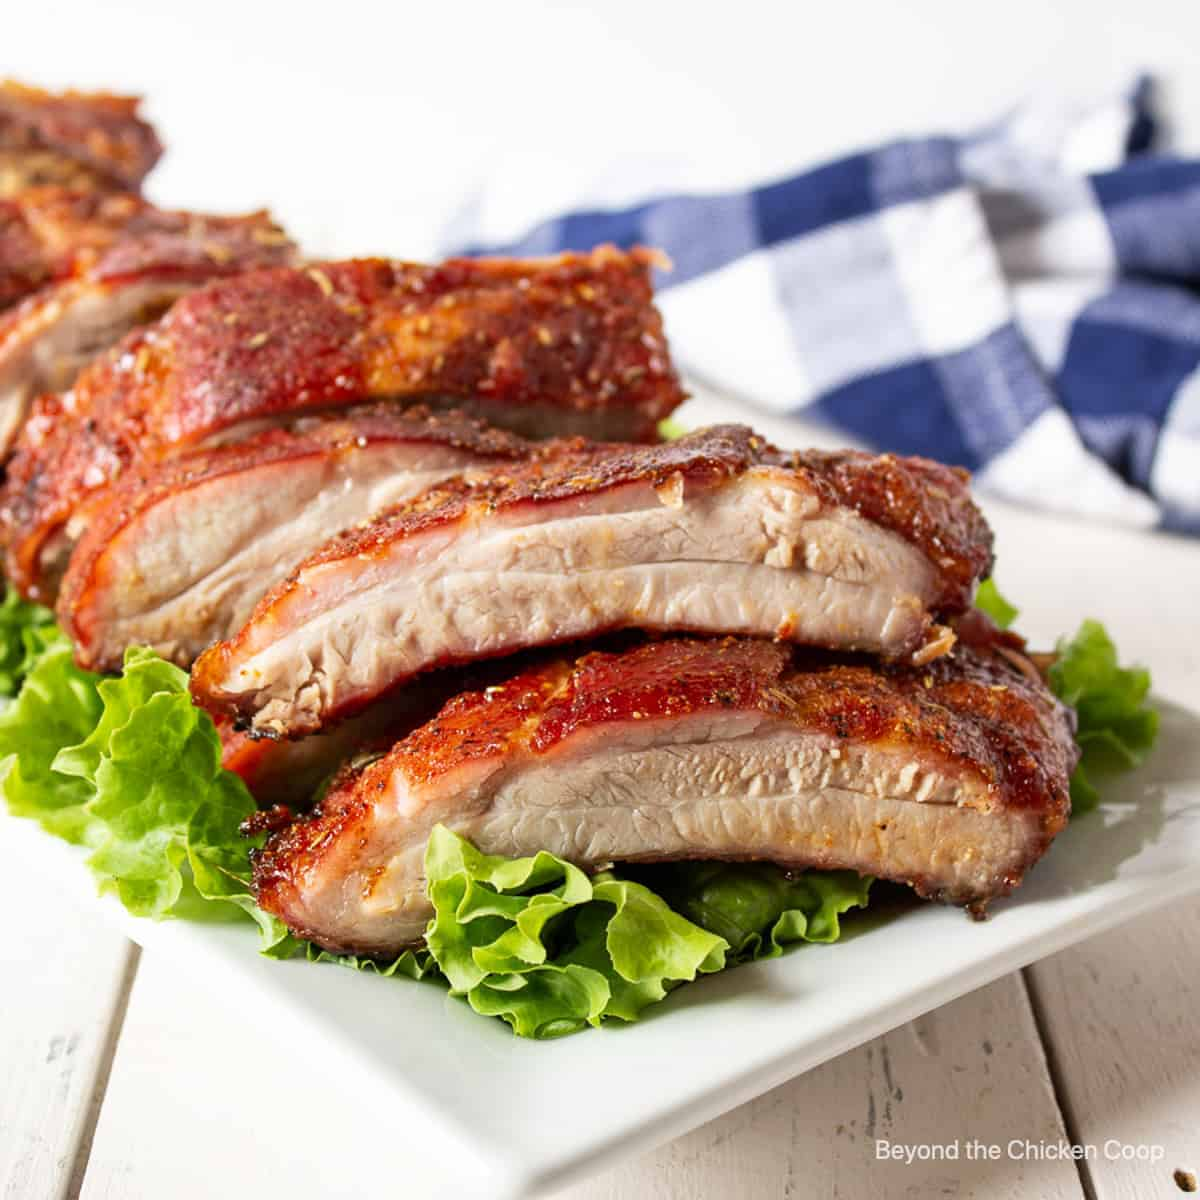 Grilled ribs on a bed of lettuce.